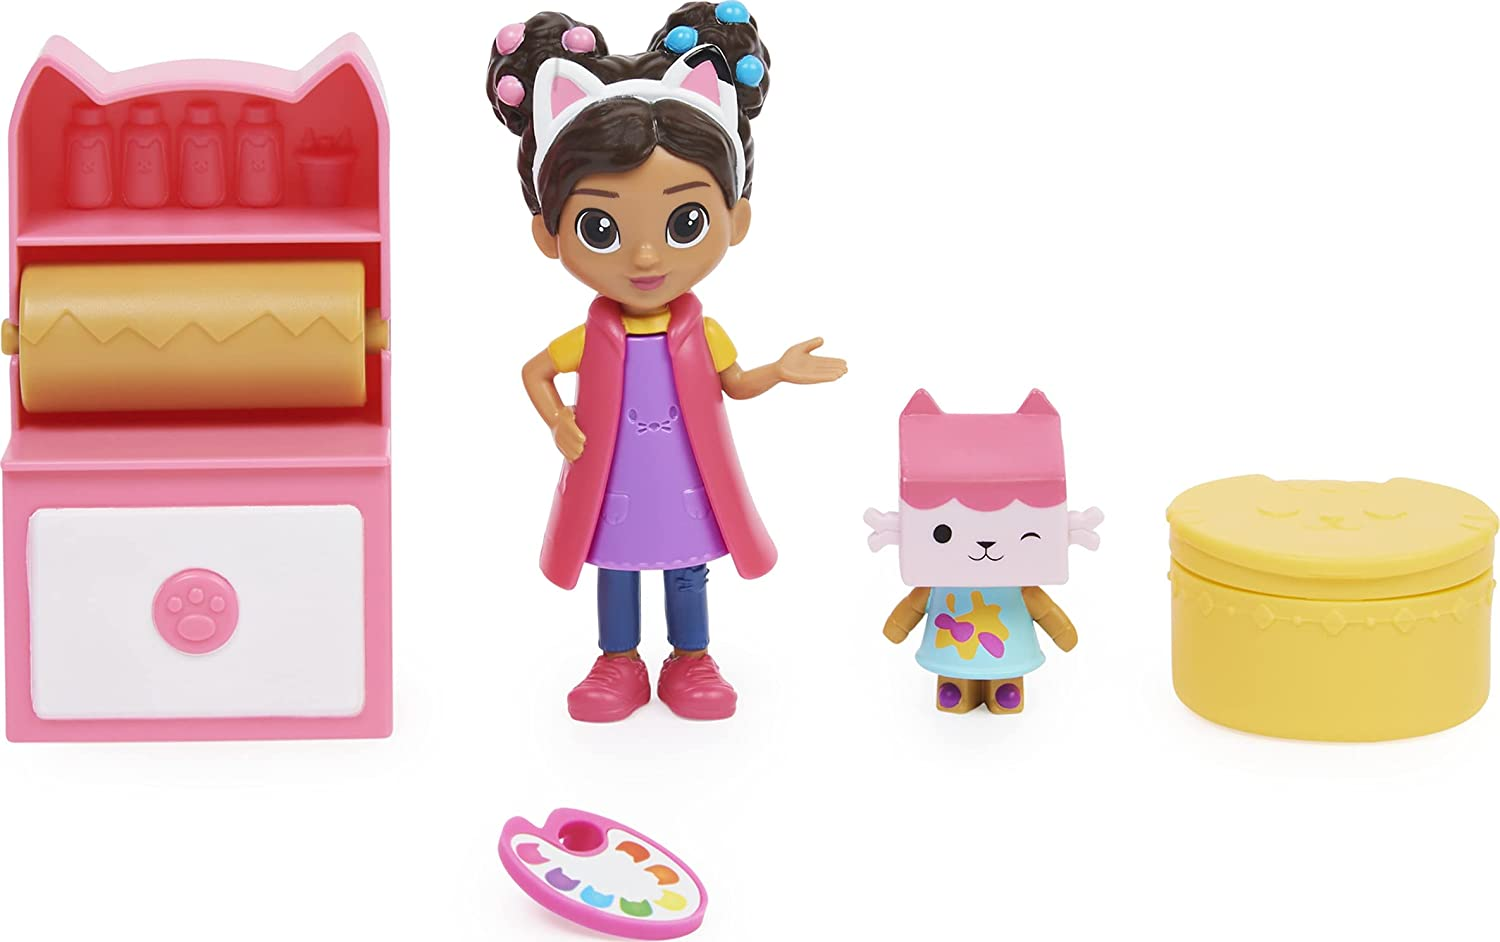 Gabby's Dollhouse DreamWorks, Art Studio Set with 2 Toy Figures, 2 Accessories, Delivery and Furniture Piece, Kids Toys for Ages 3 and up